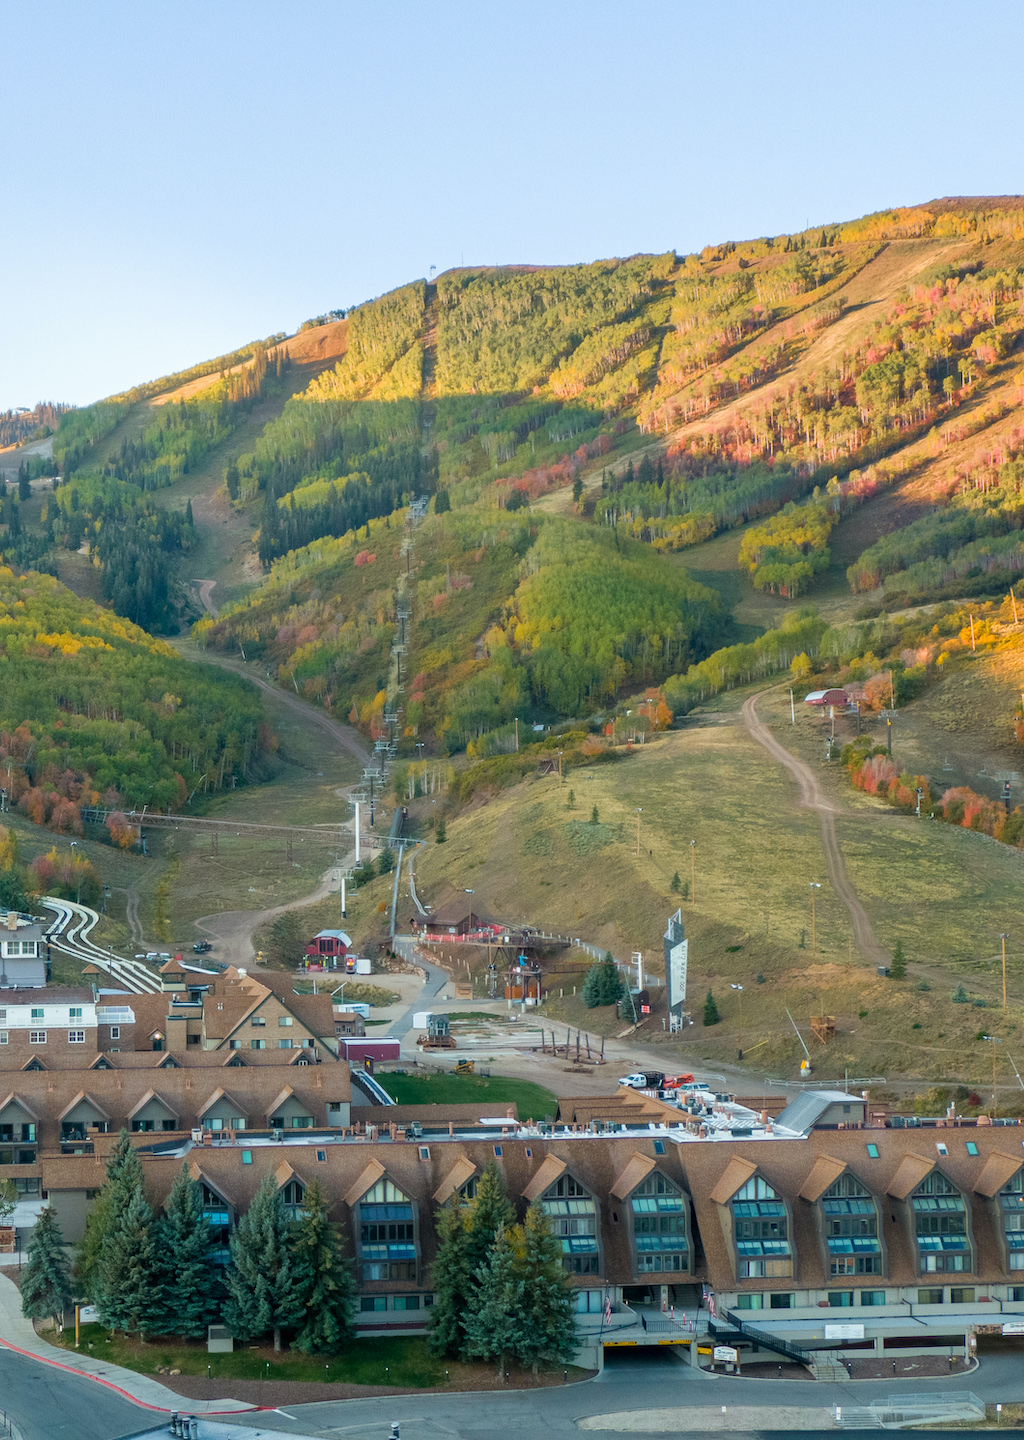 Aerial View of Park City Base Area in Park City During Autumn